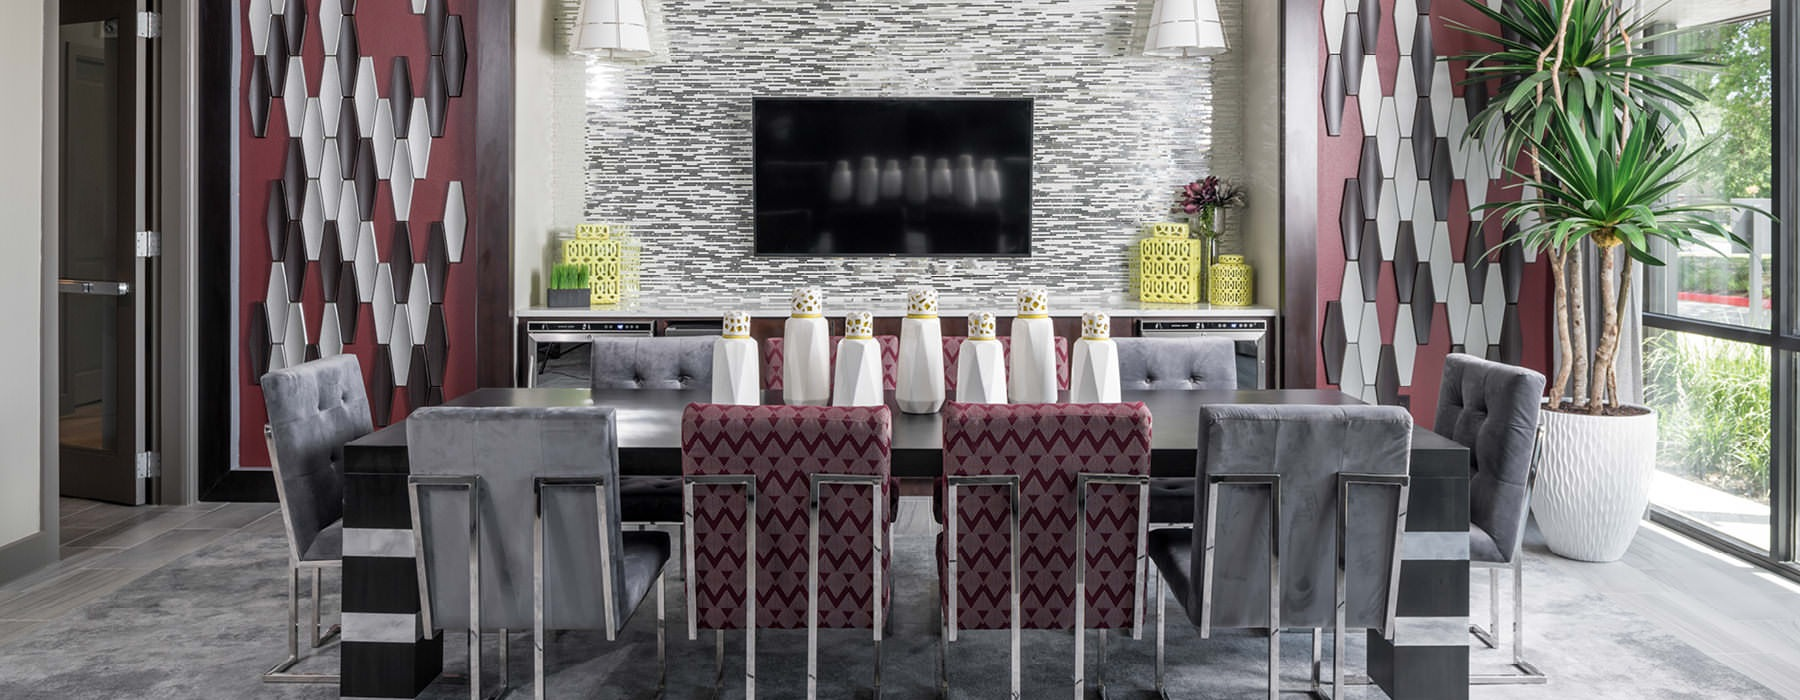 clubhouse kitchen area with long table surrounded by chairs and pendant lighting